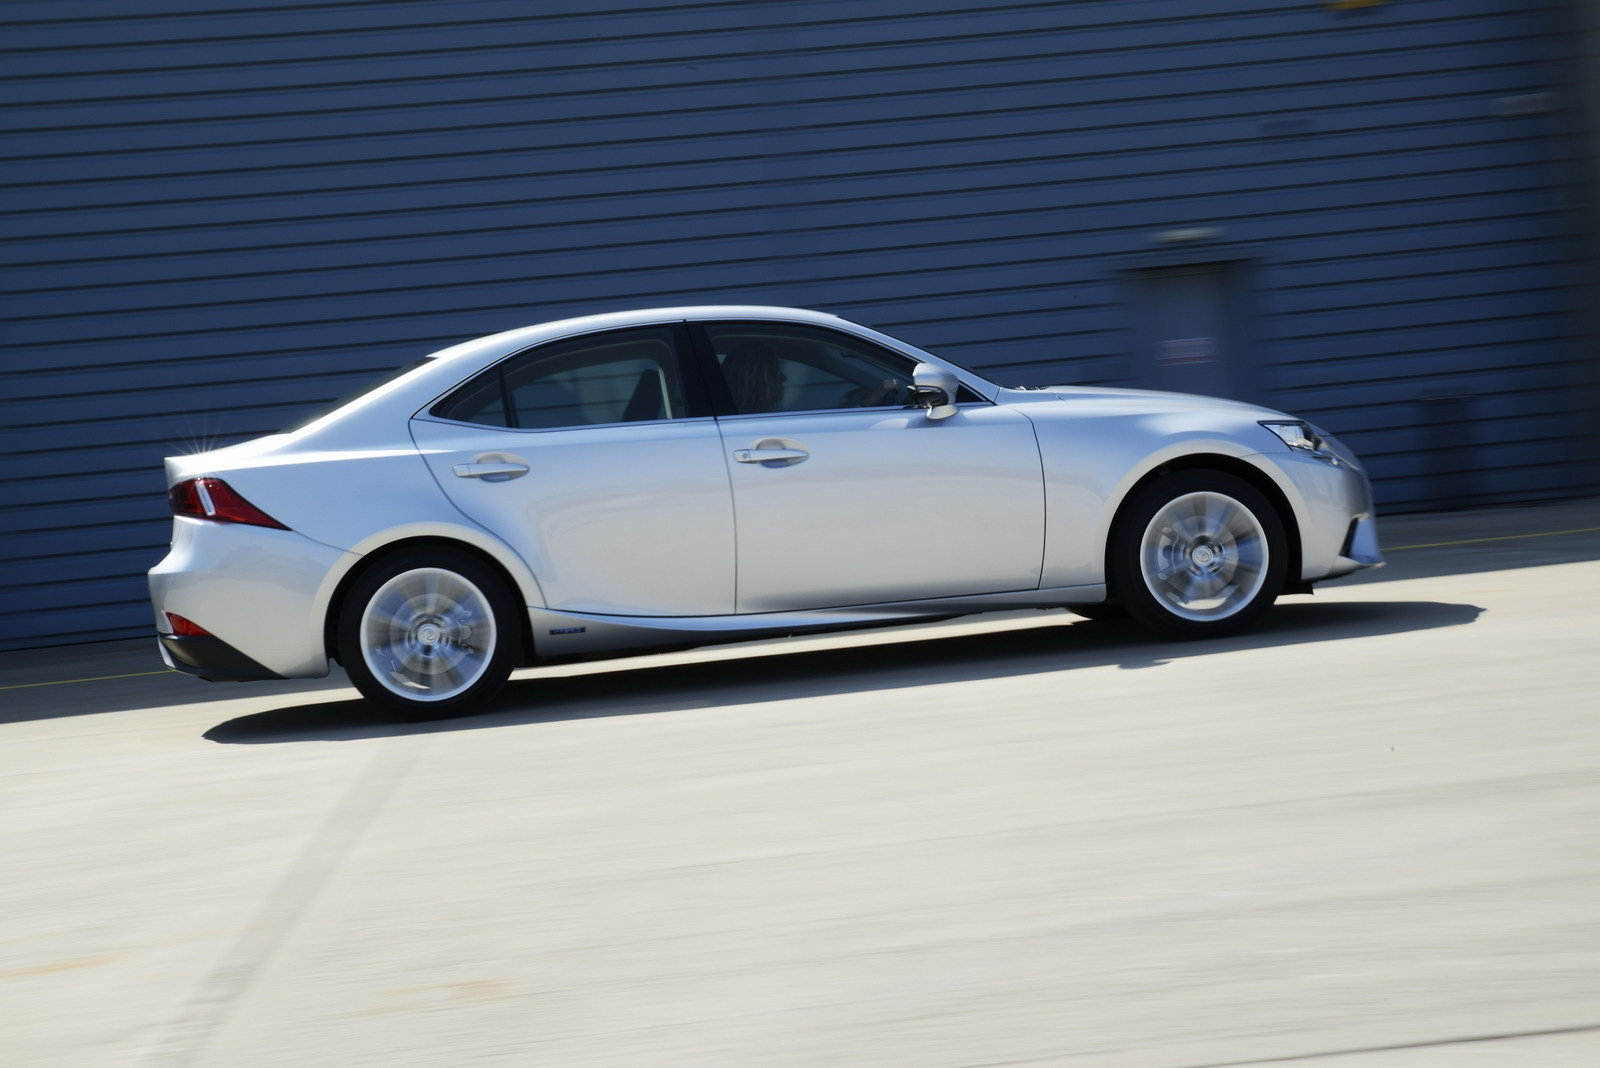 2014 lexus is 300h executive edition review top speed. Black Bedroom Furniture Sets. Home Design Ideas